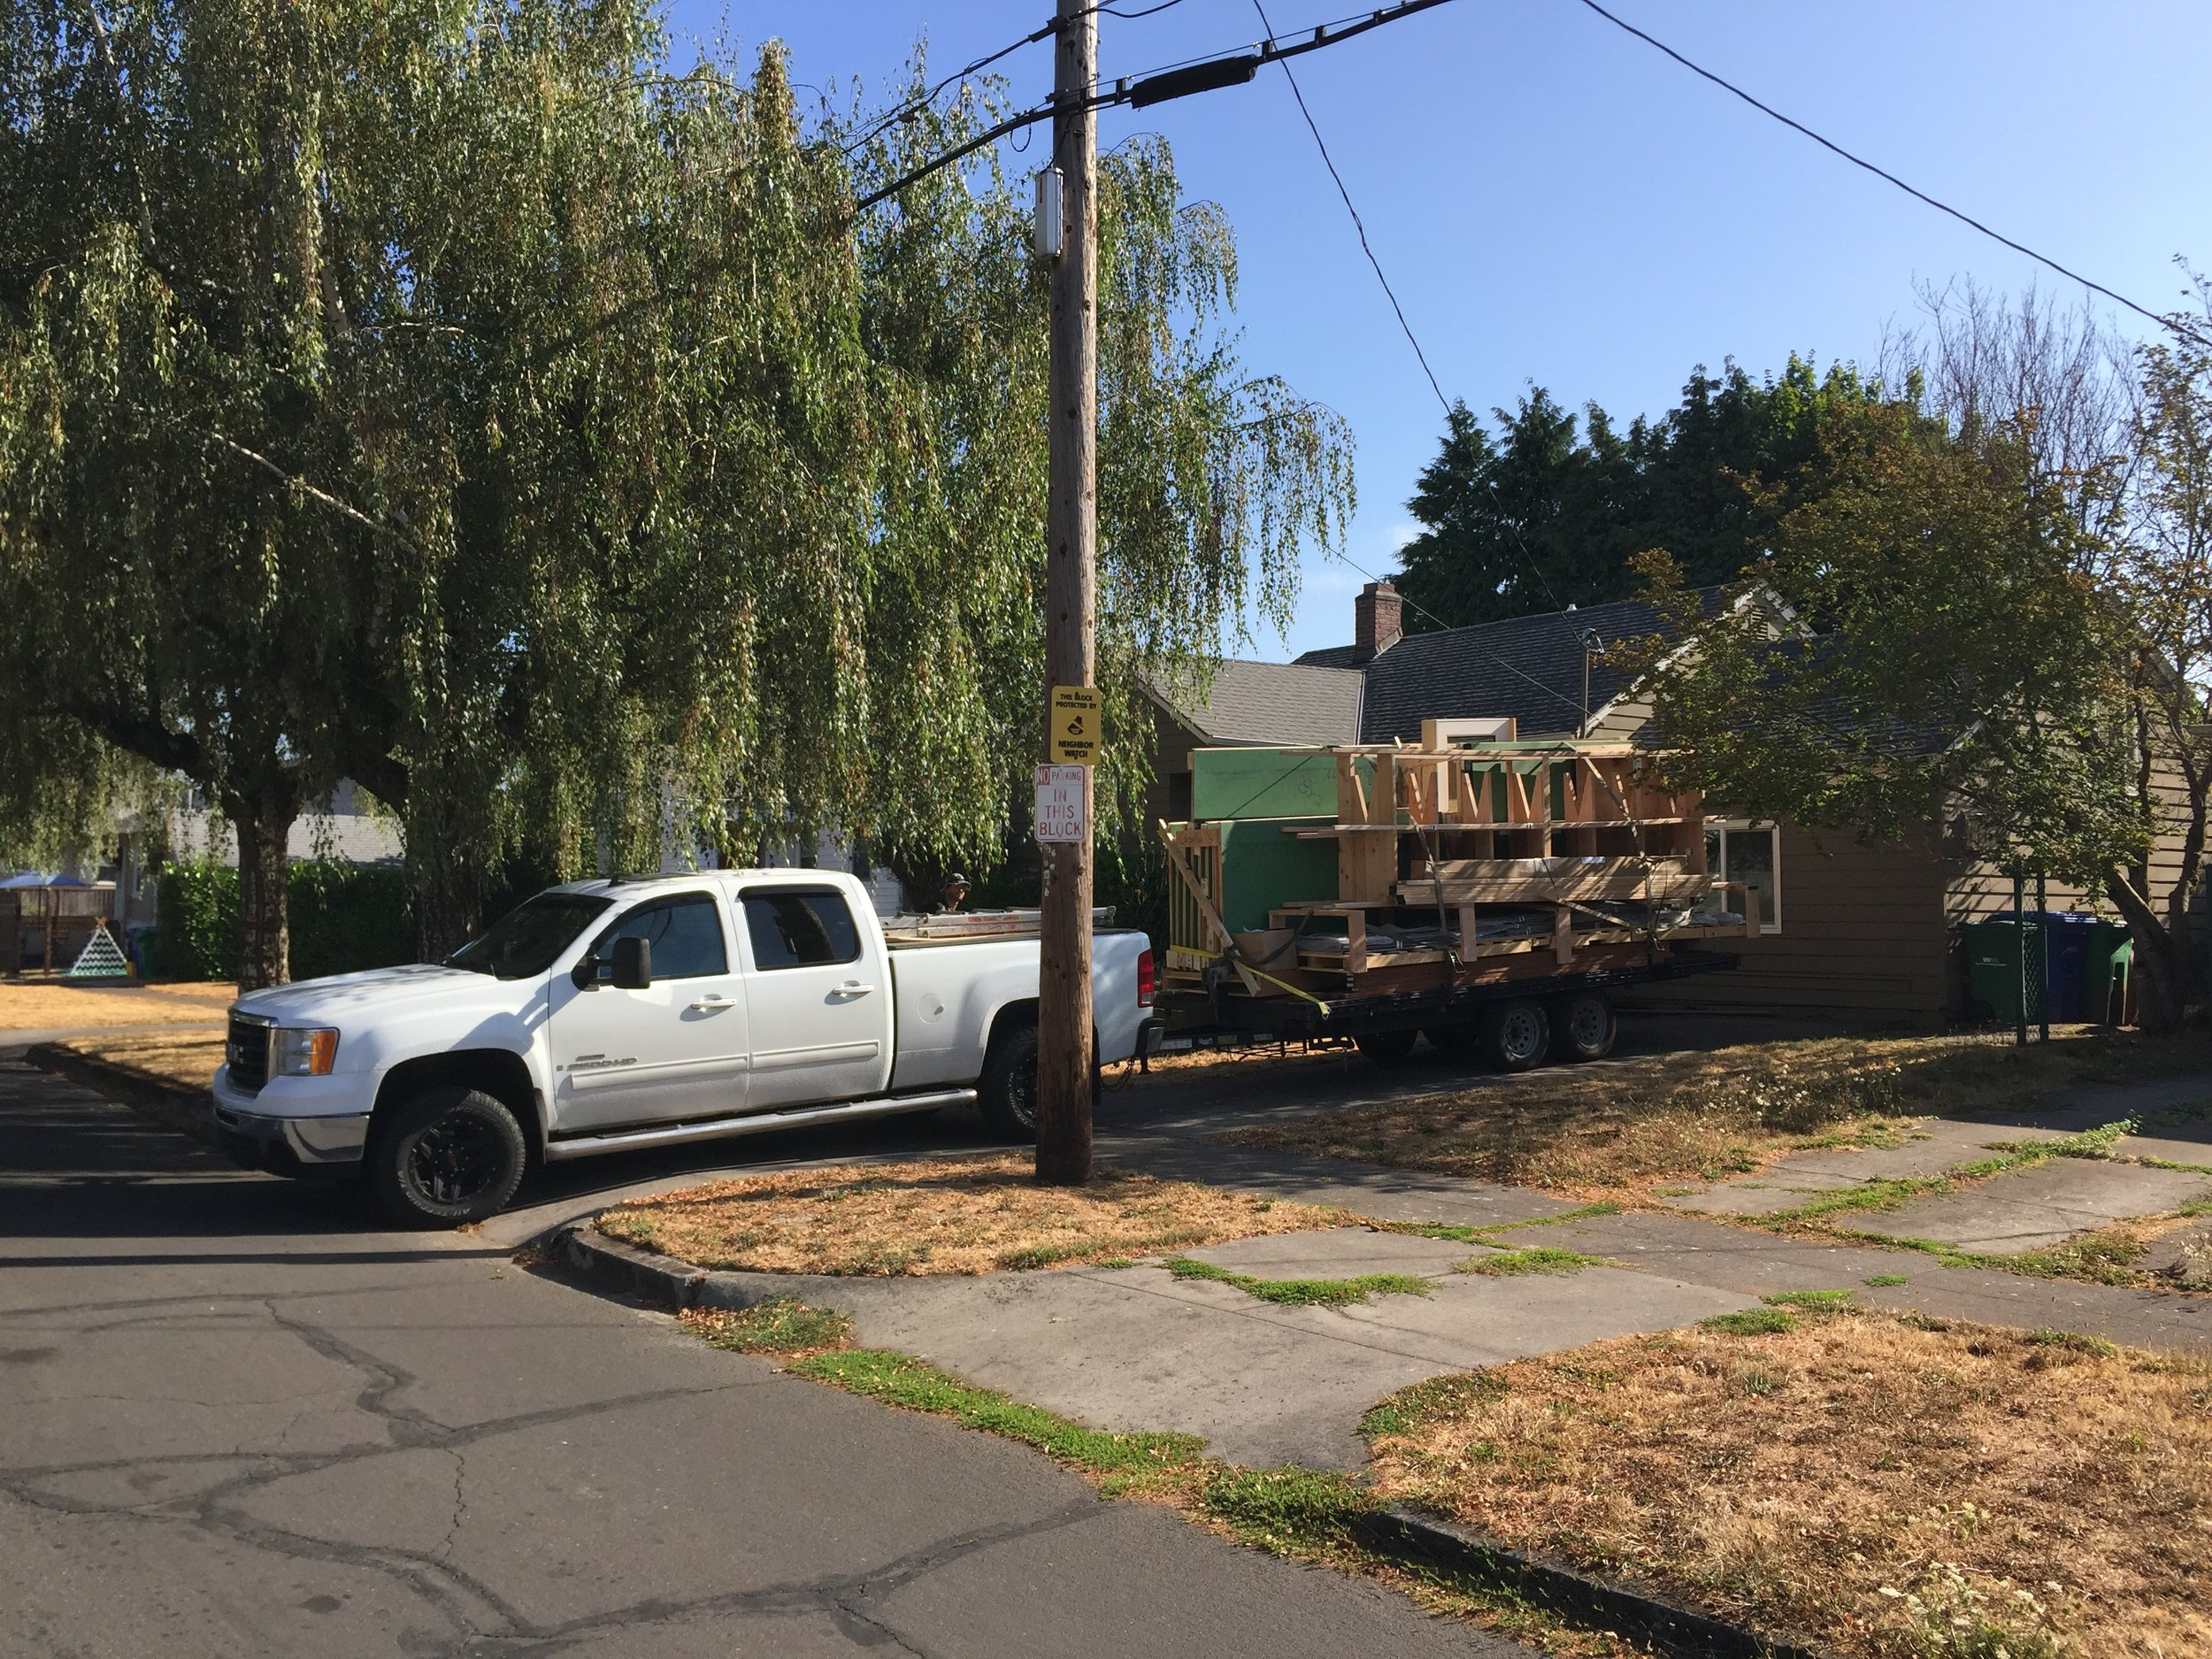 The entire 12x18 studio shed arrived on this trailer.